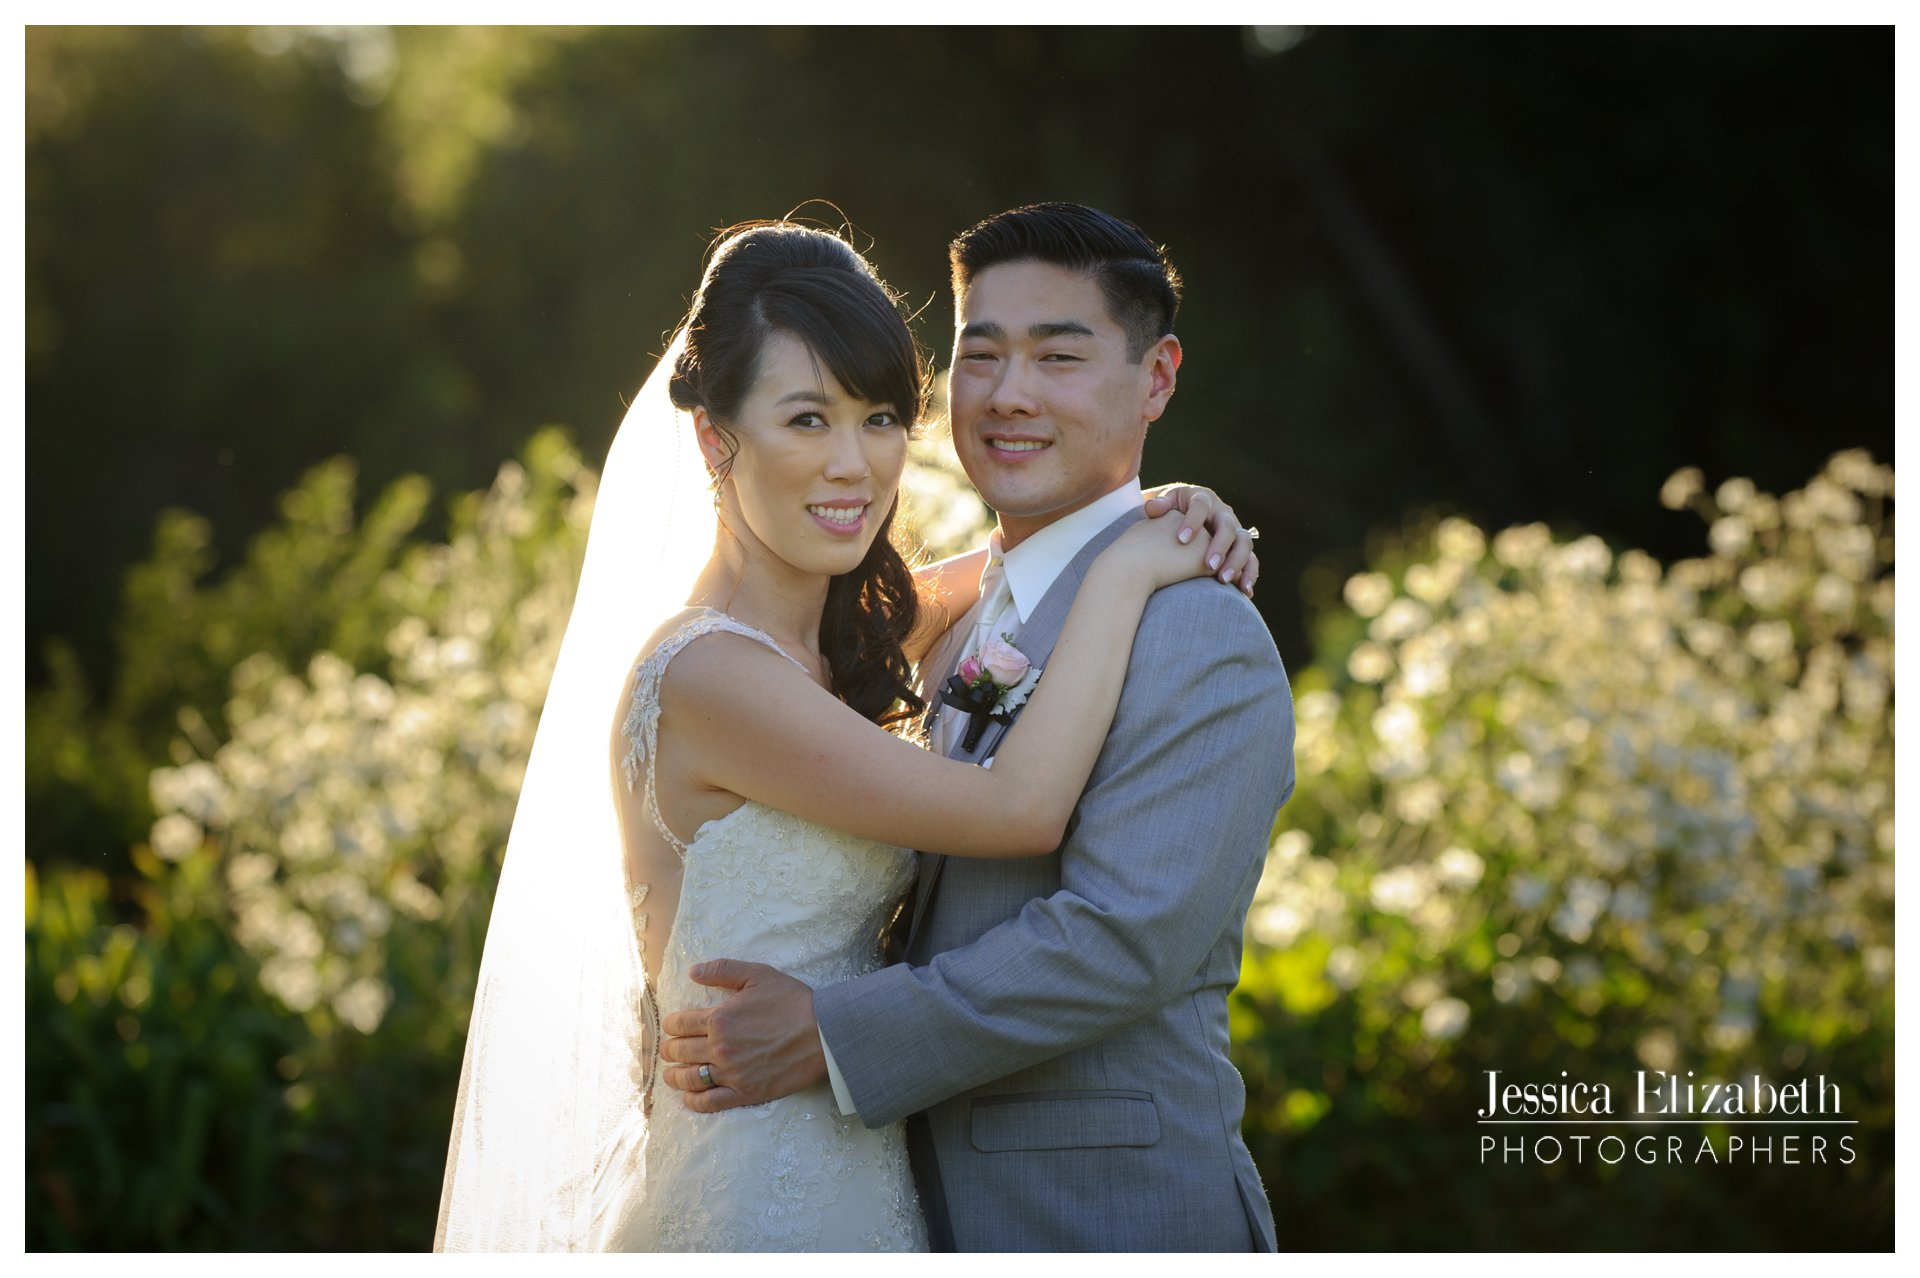 27-South Coast Botanic Garden Palos Verdes Wedding Photography by Jessica Elizabeth